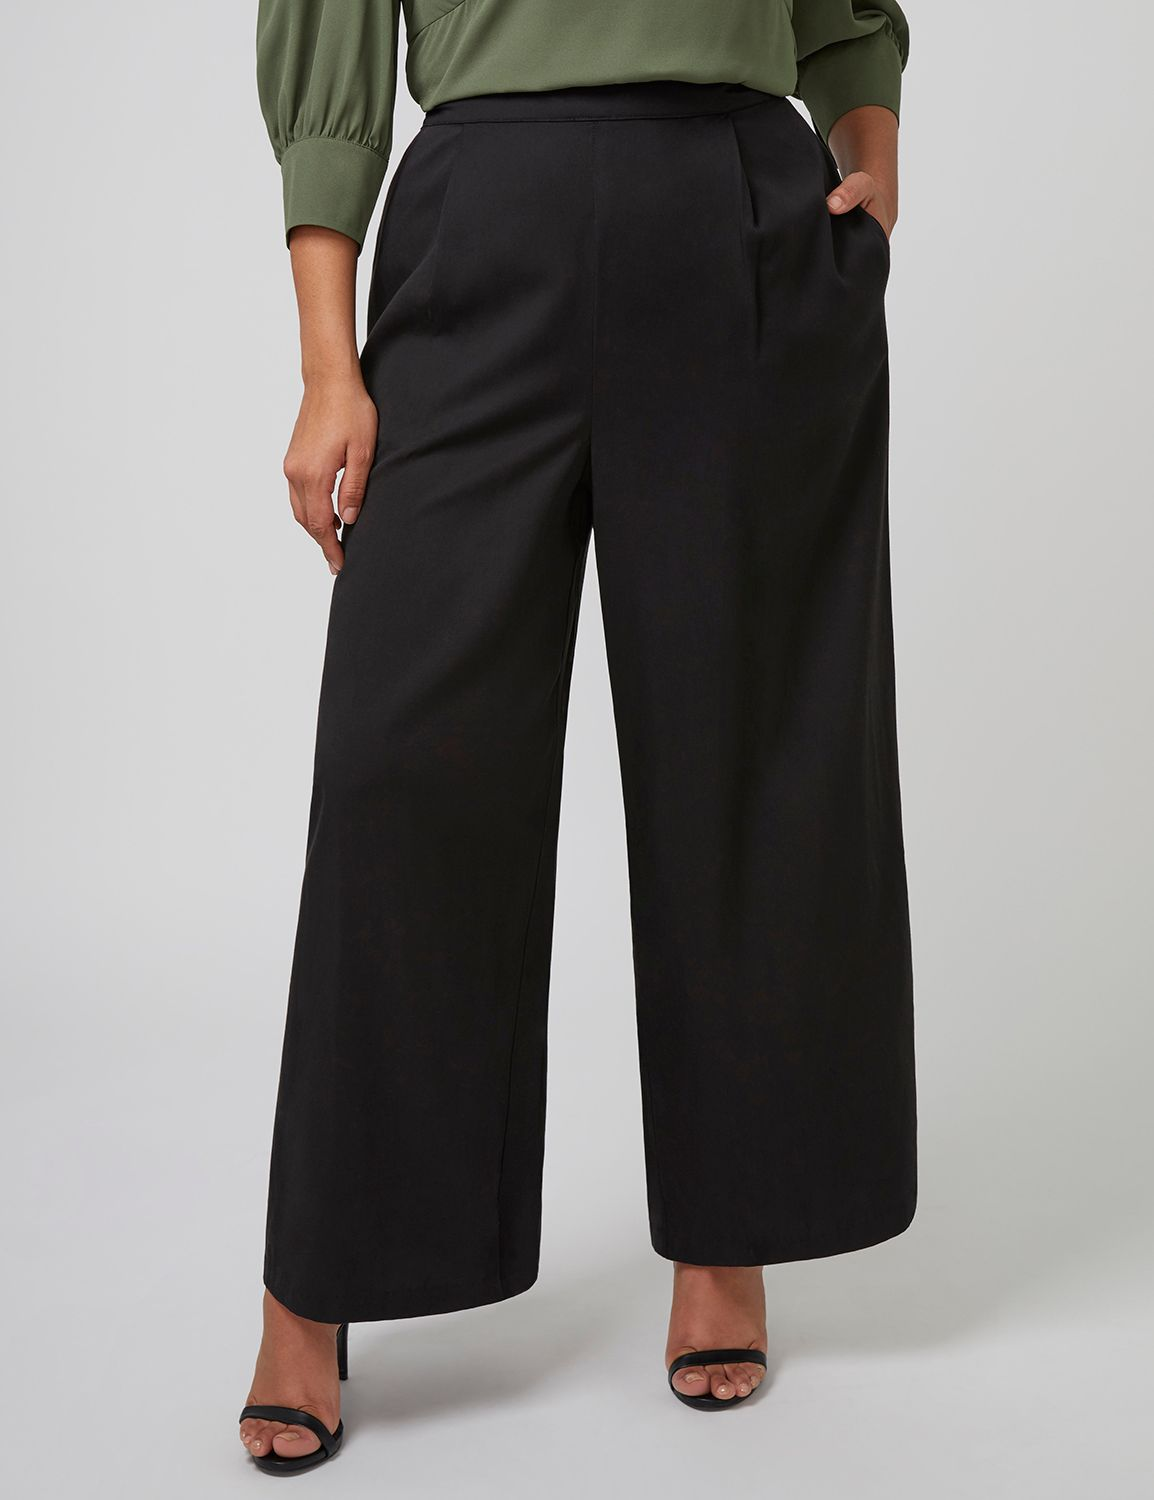 Vintage High Waisted Trousers, Sailor Pants, Jeans Lane Bryant Womens Fast Lane Wide-Leg Pant With Scalloped Detail 20 Pitch Black $79.95 AT vintagedancer.com